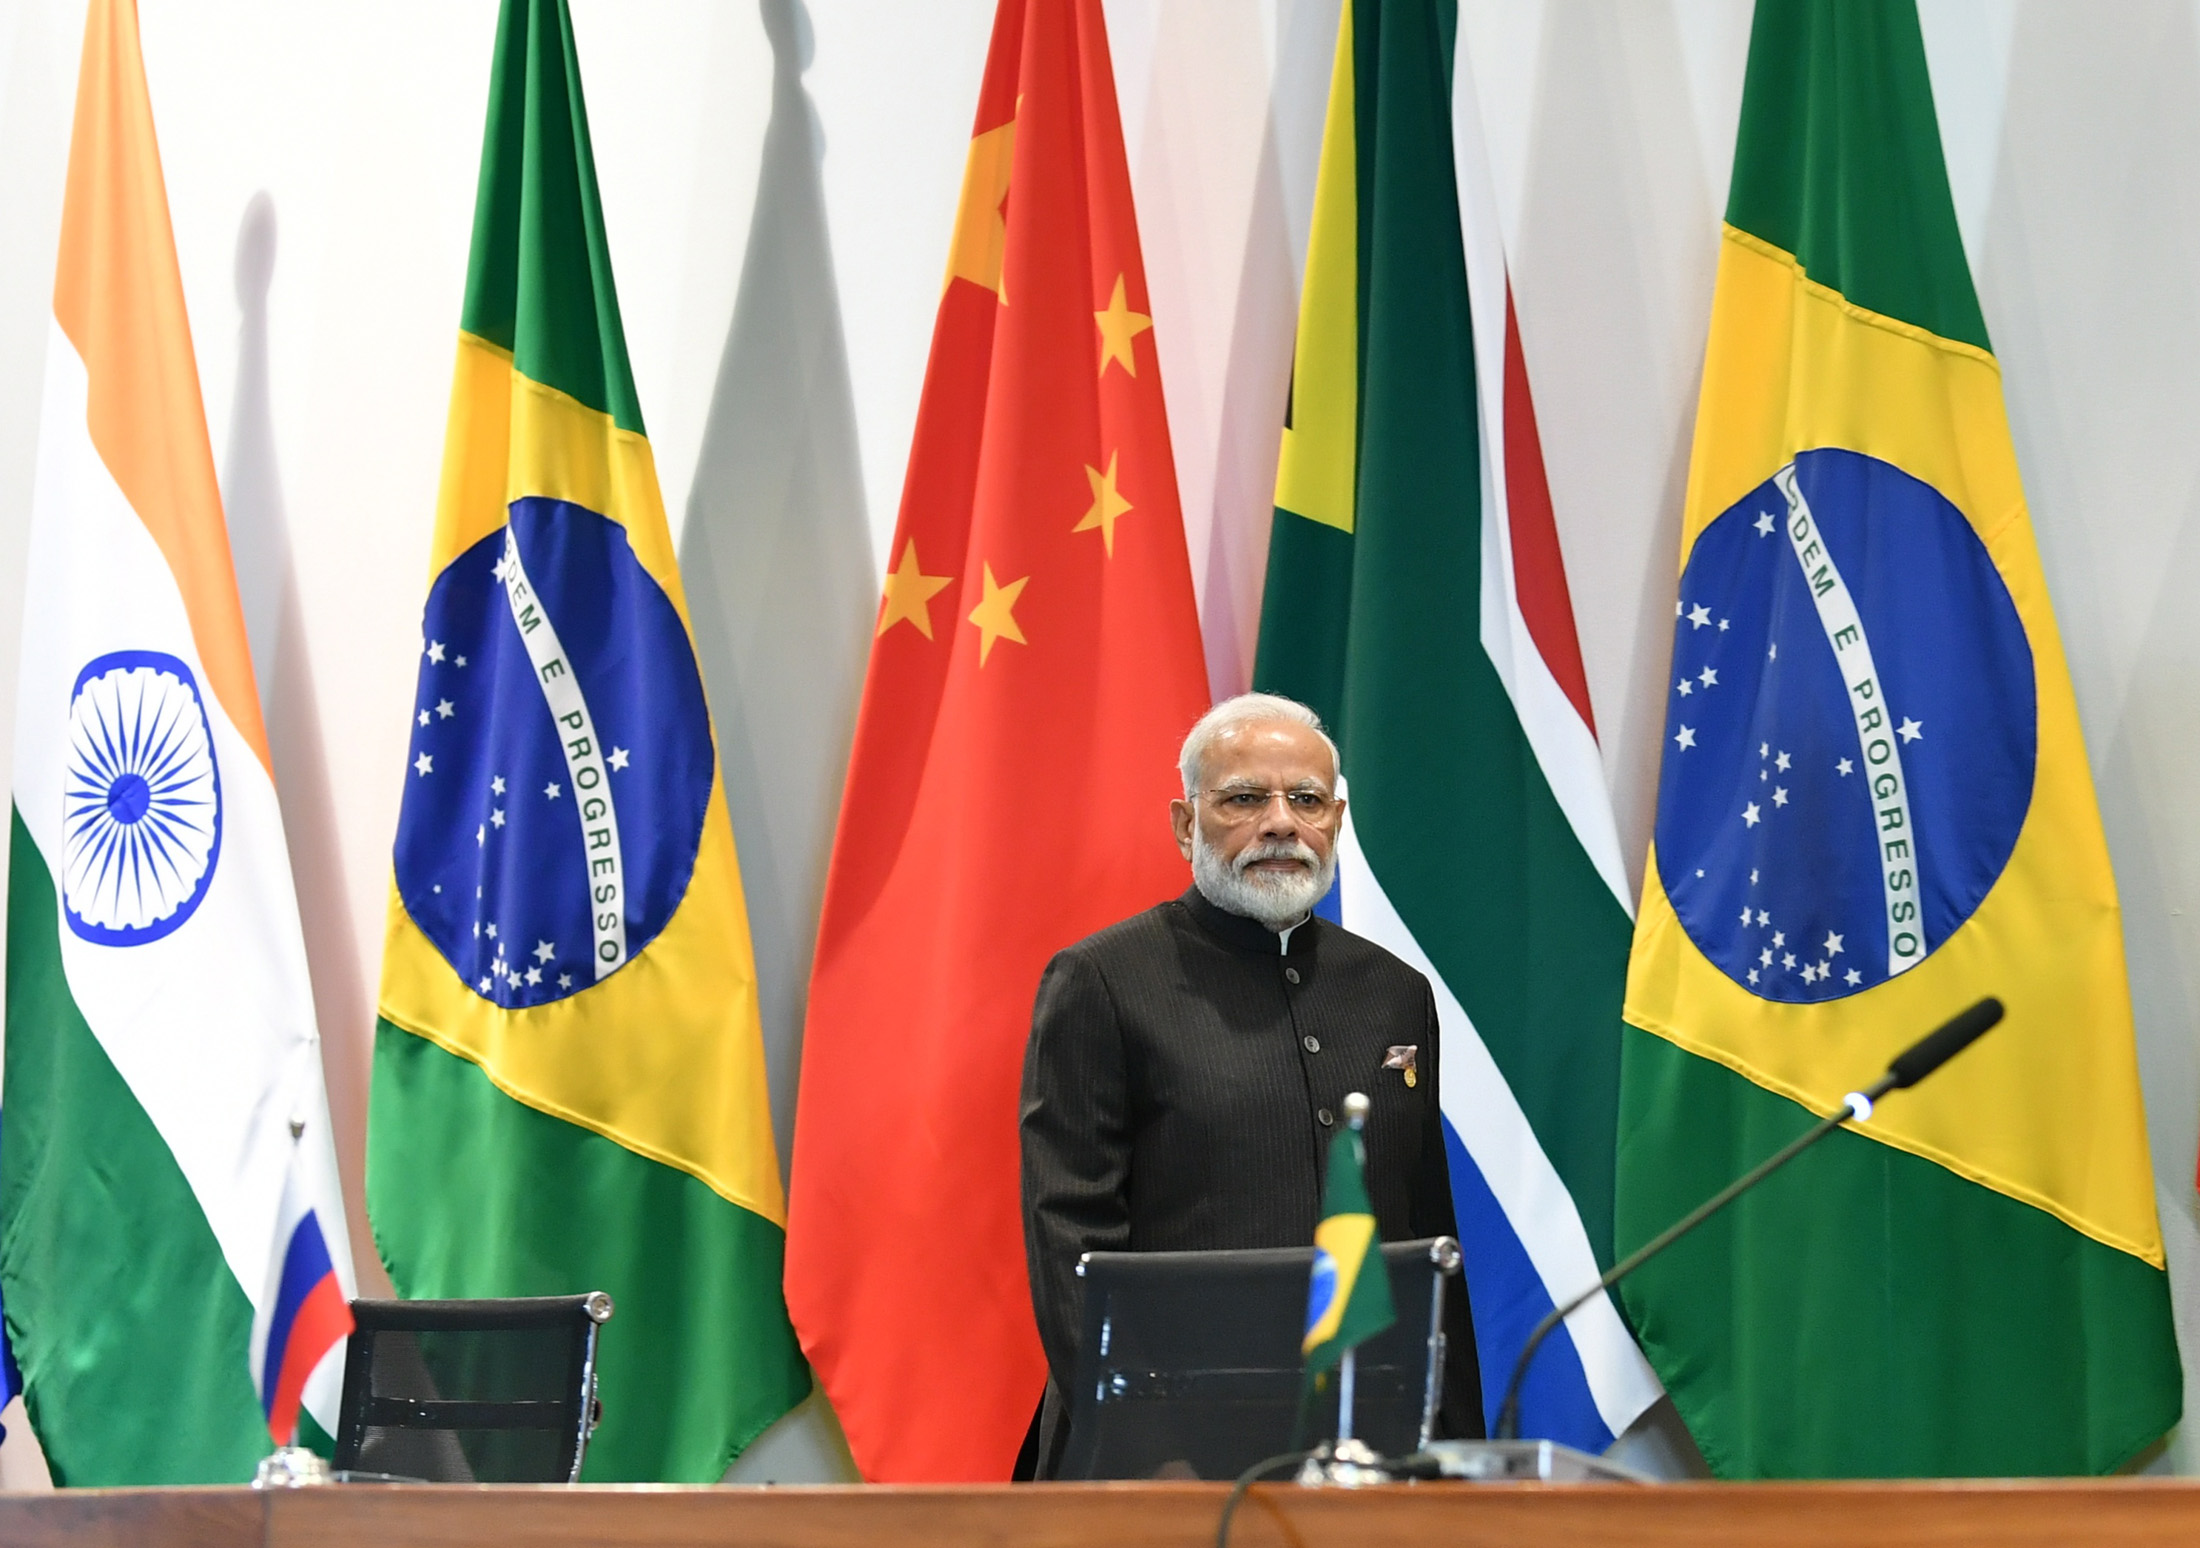 The Prime Minister, Shri Narendra Modi in the BRICS Family Photograph with other Leaders, during the 11th BRICS Summit, at the Itamaraty palace, in Brasilia, Brazil on November 14, 2019.